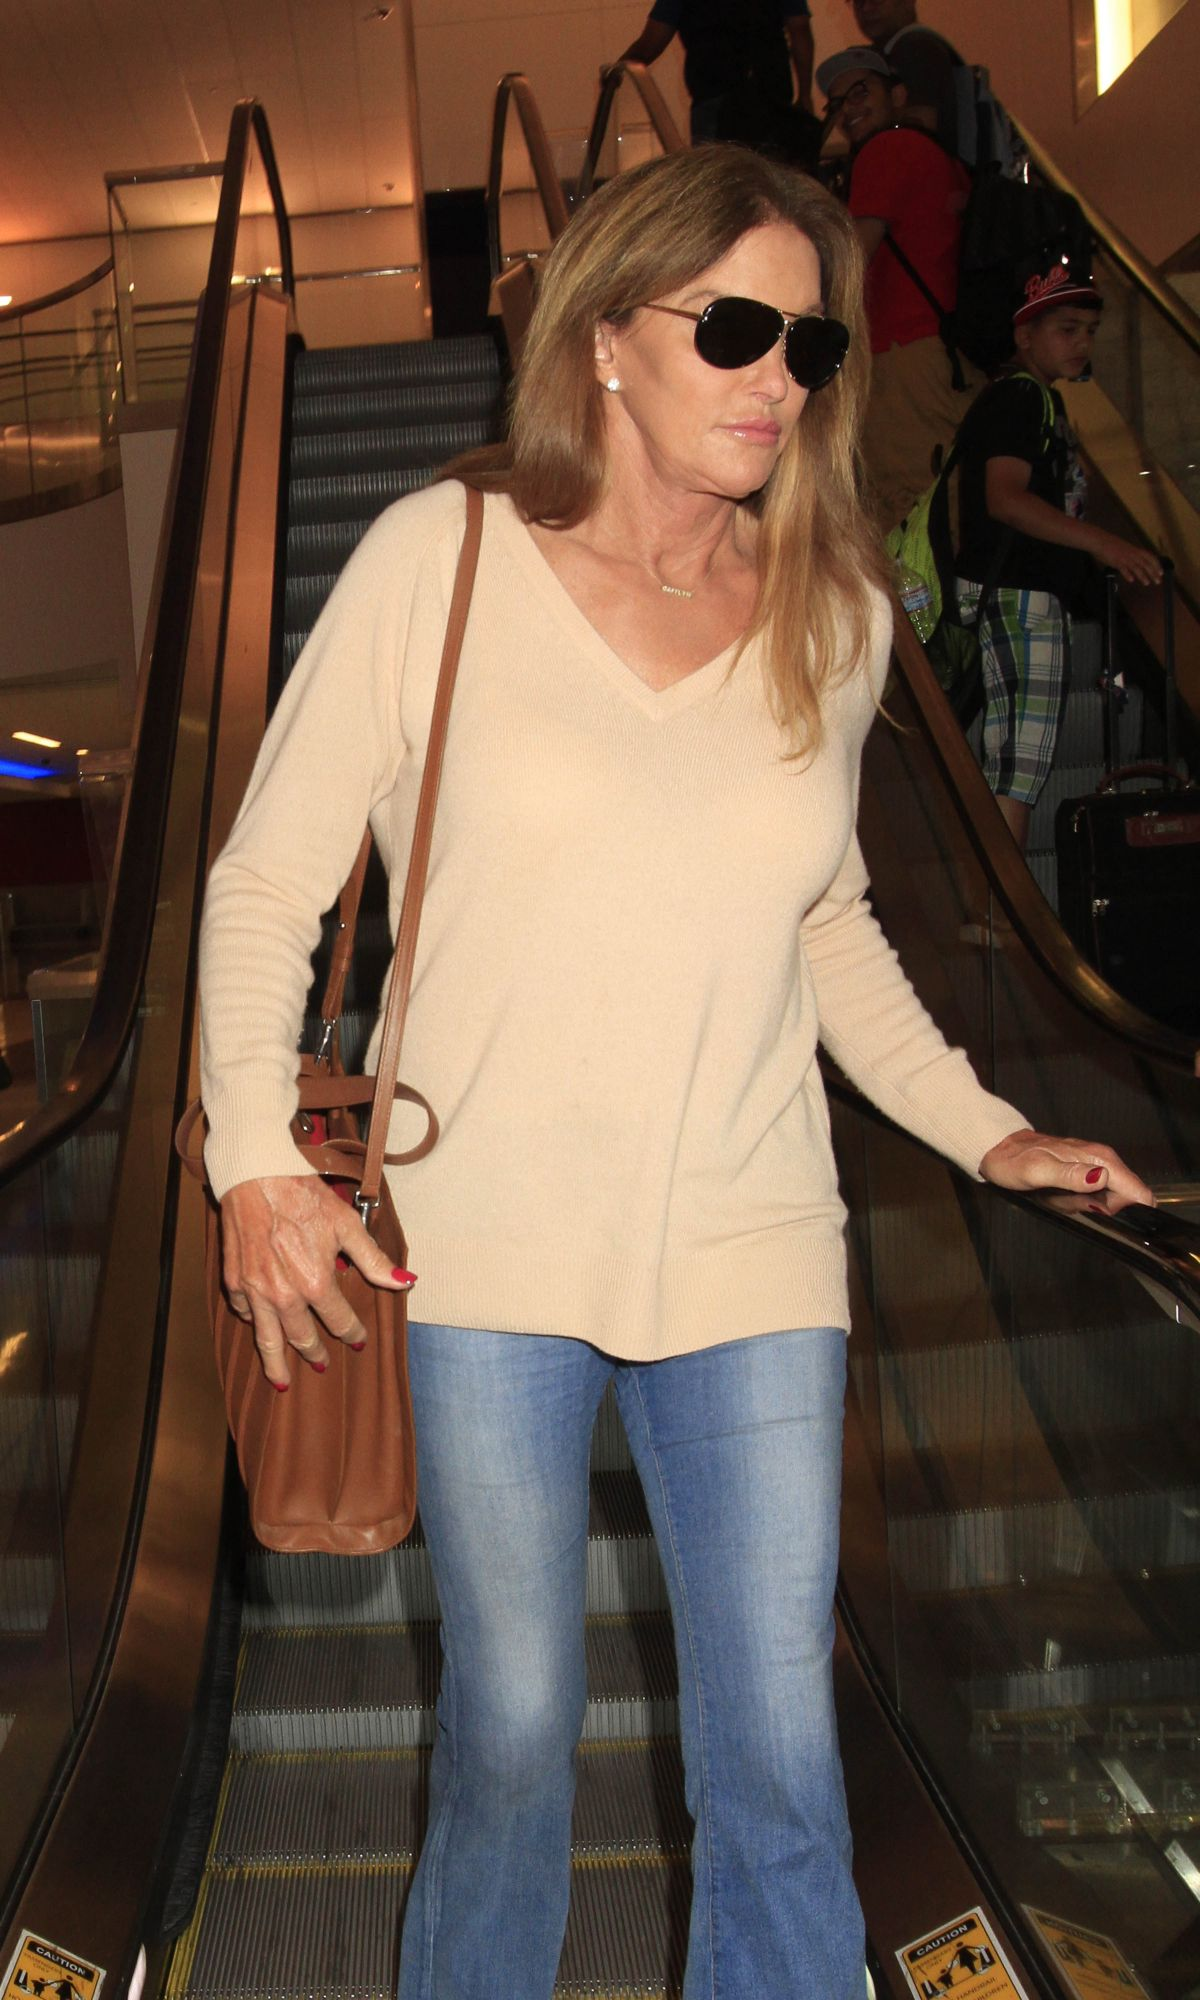 CAITLYN JENNER at LAX Airport in Los Angeles 07/01/2016